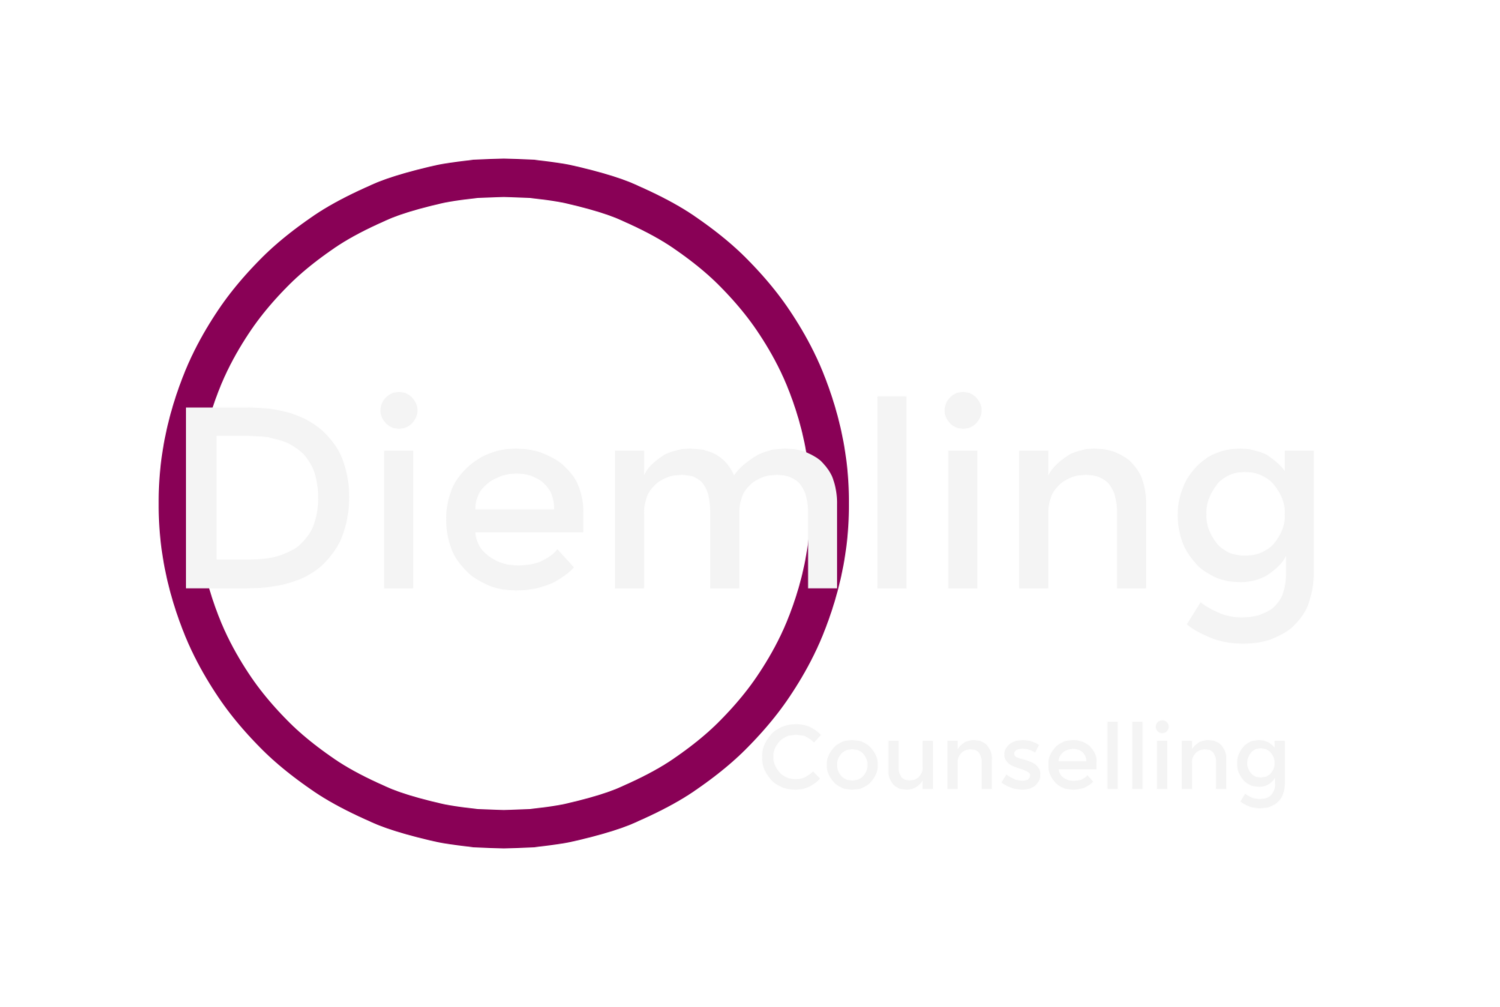 Diemling Counselling